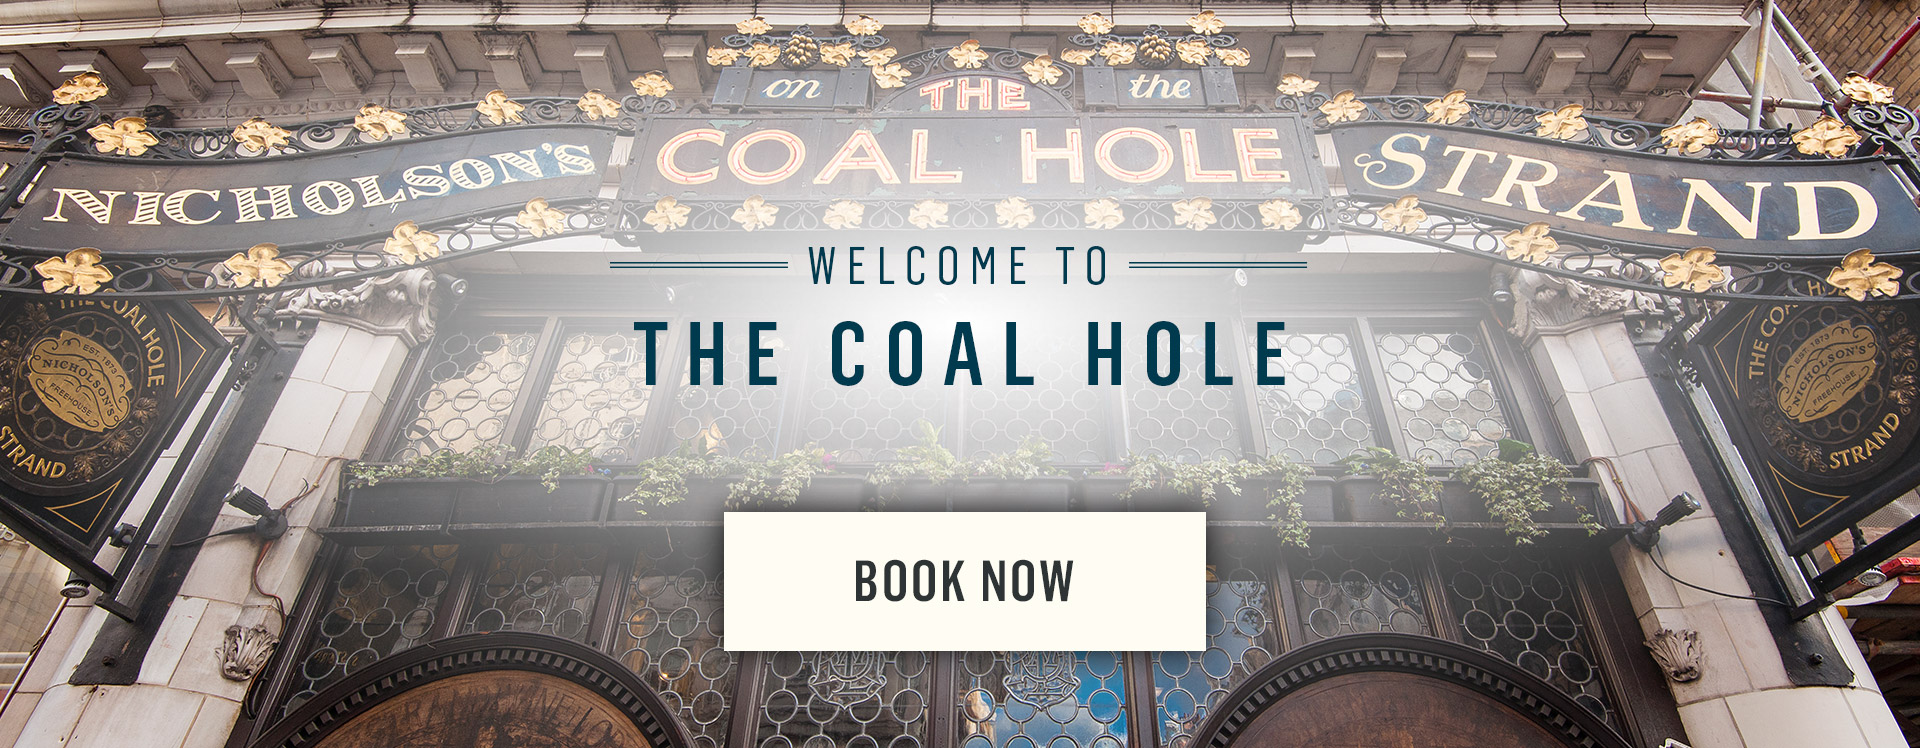 Welcome to The Coal Hole - Book Now